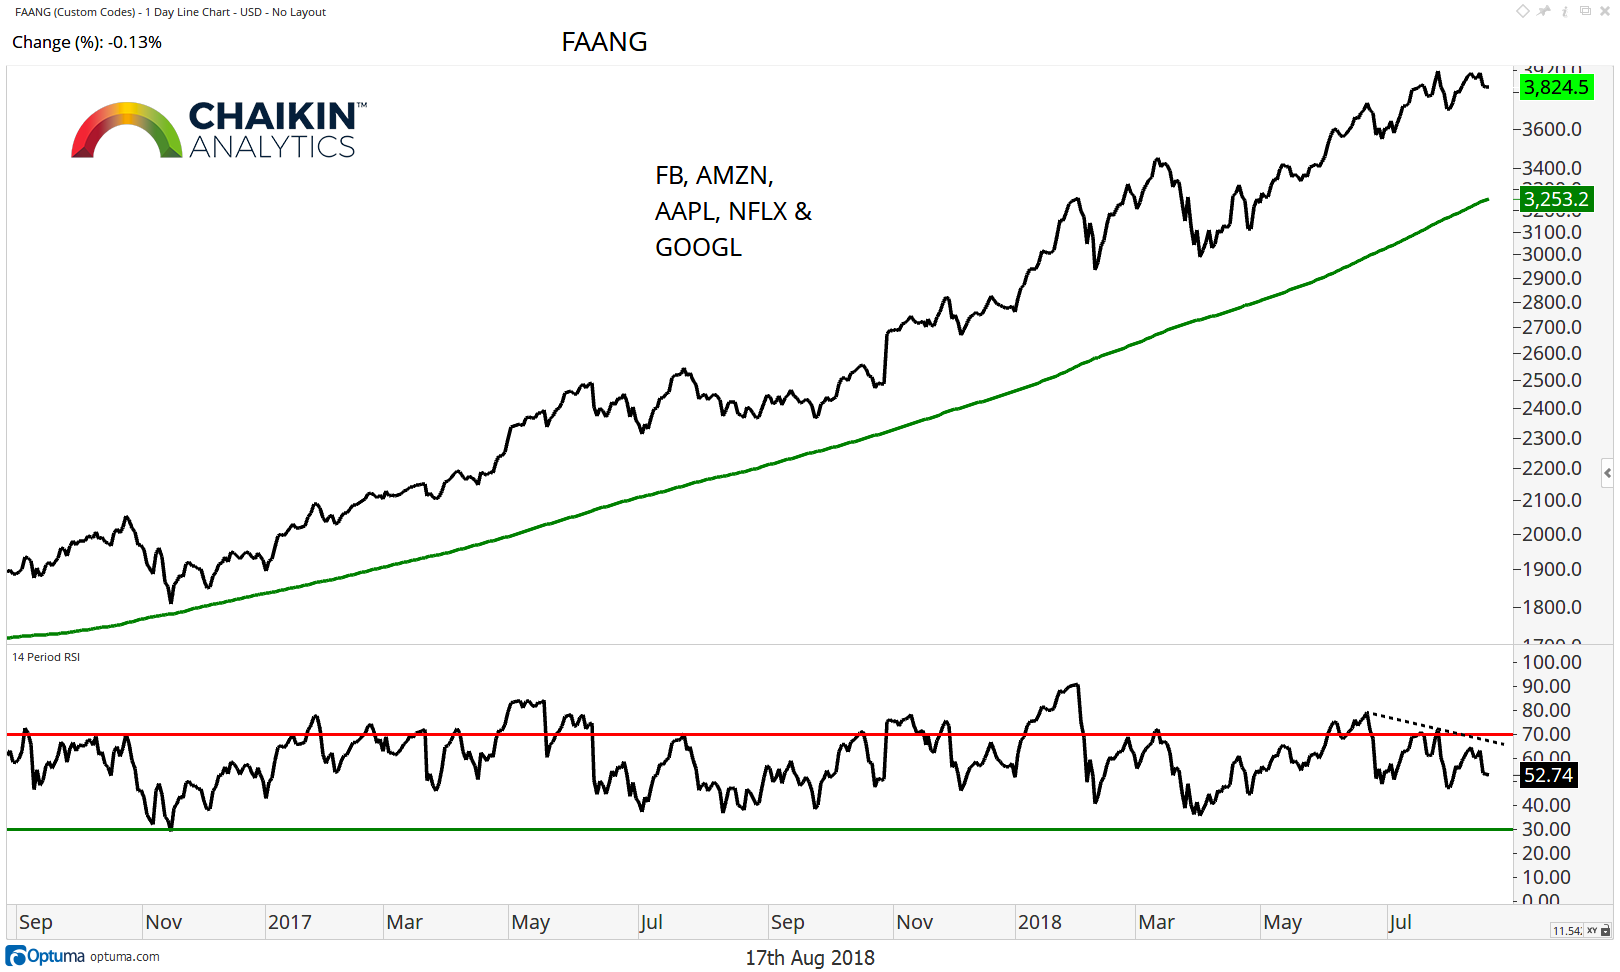 fang stocks performance vs sp 500 index chart_17 august 2018